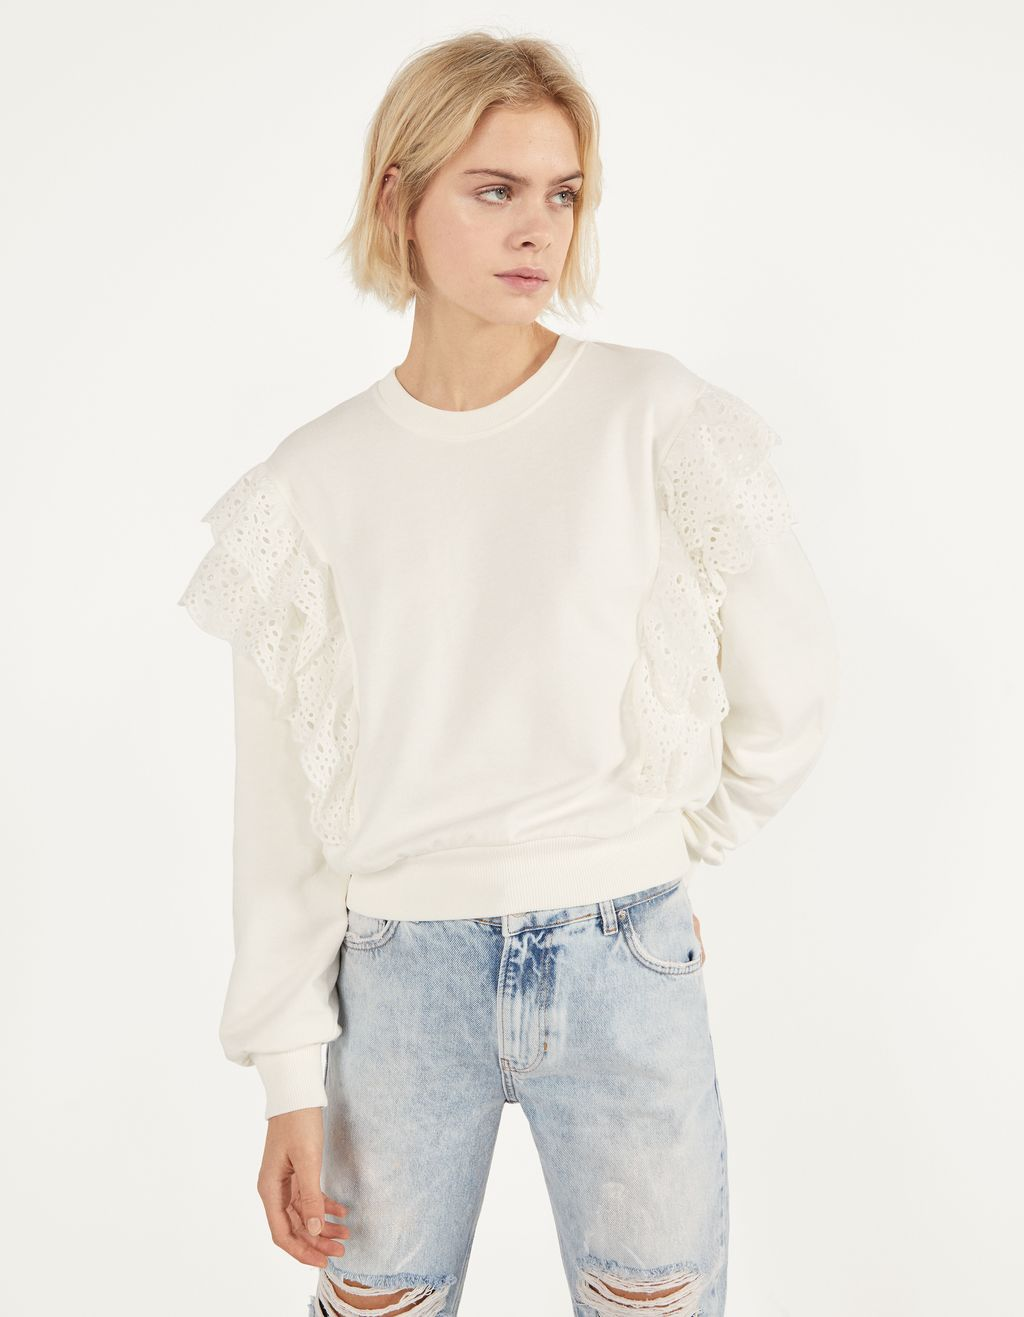 Sweatshirt with ruffles and Swiss embroidery